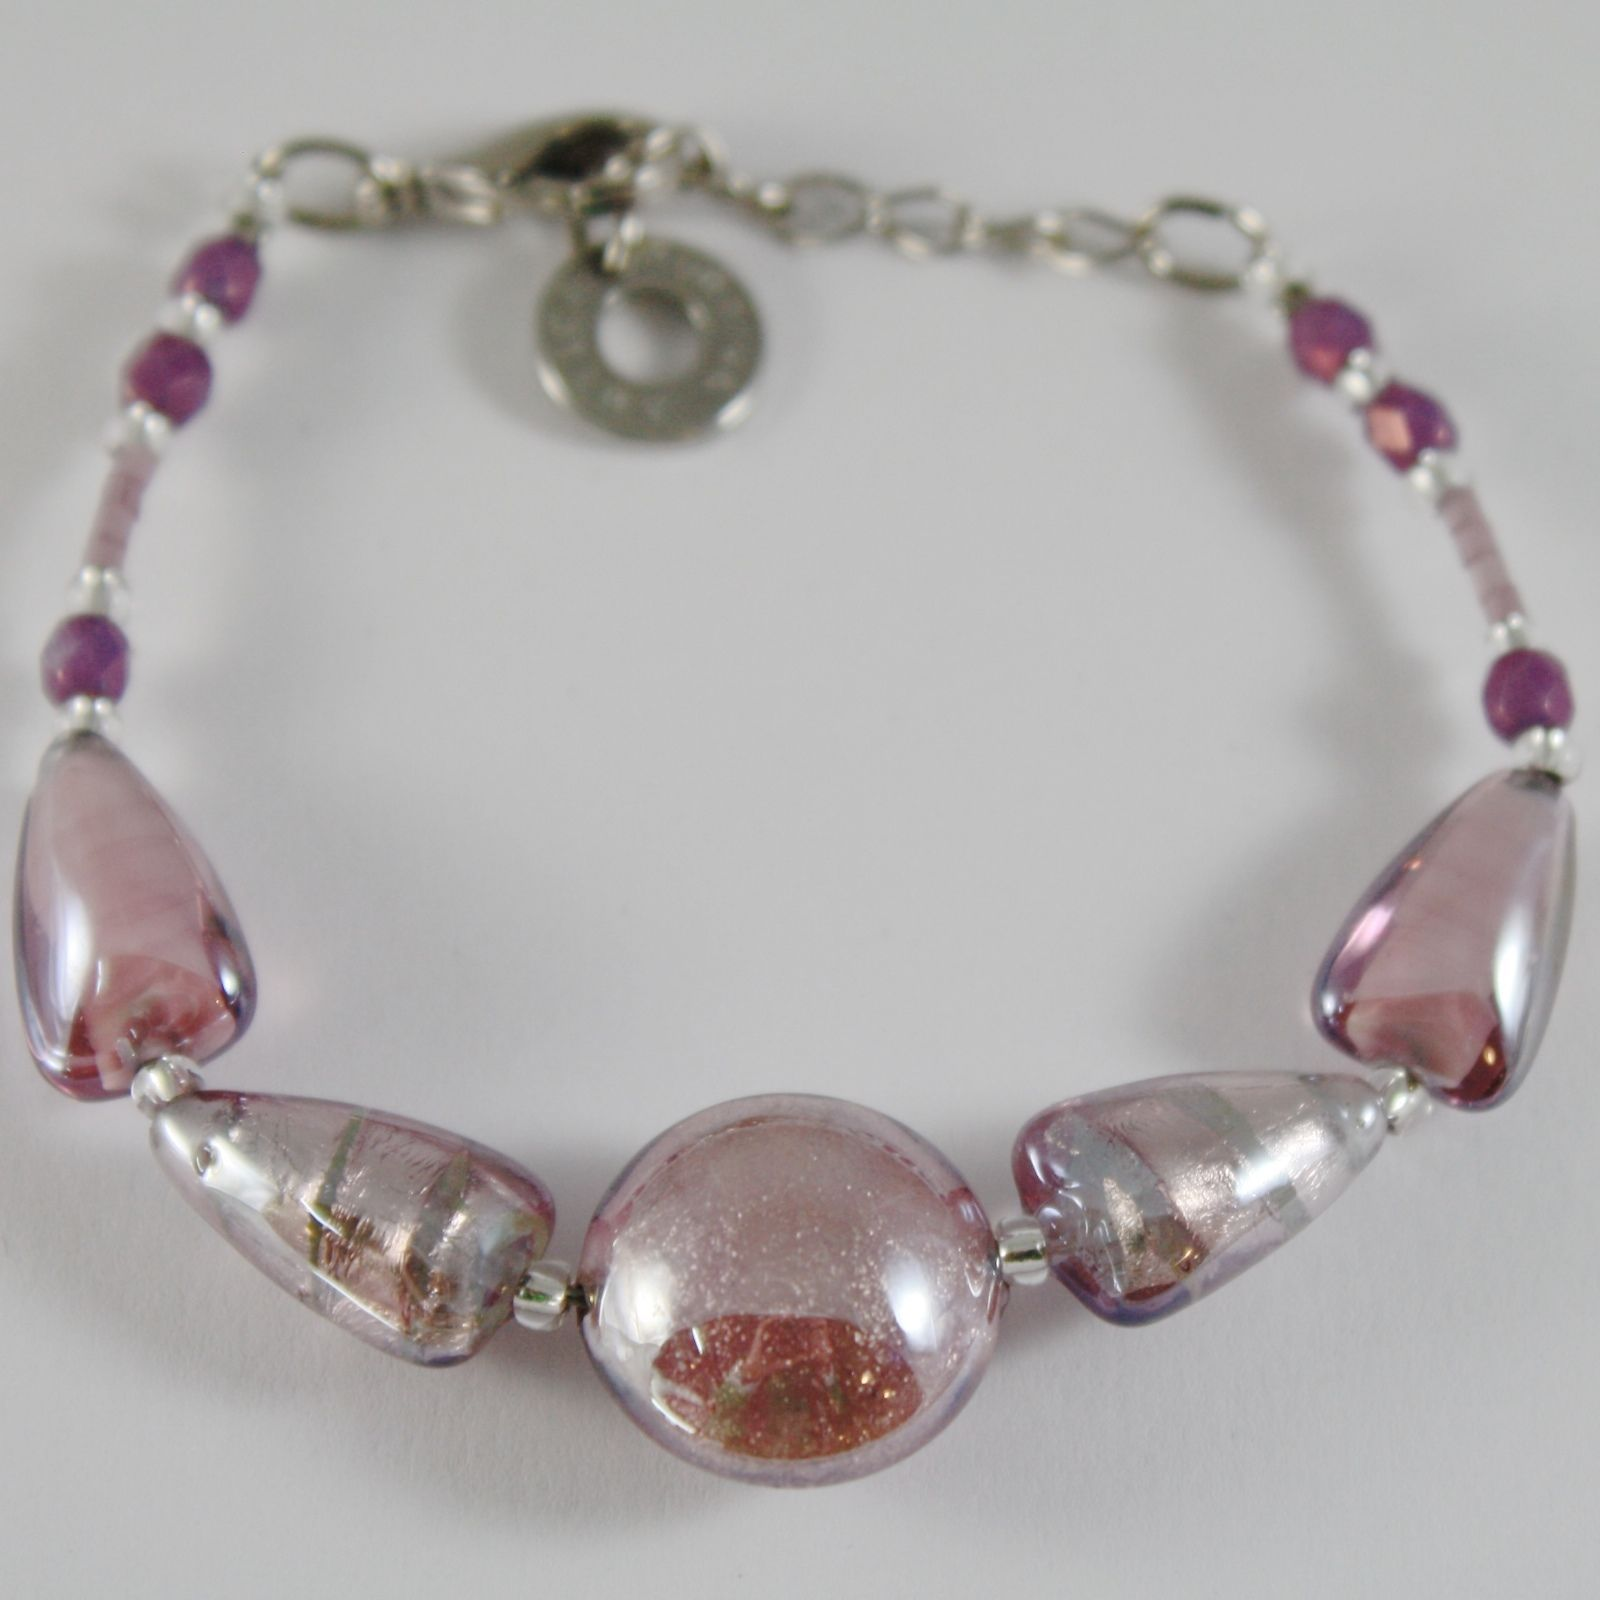 ANTICA MURRINA VENEZIA BRACELET PURPLE, PINK, DISC AND TRIANGLE TRIANGLES